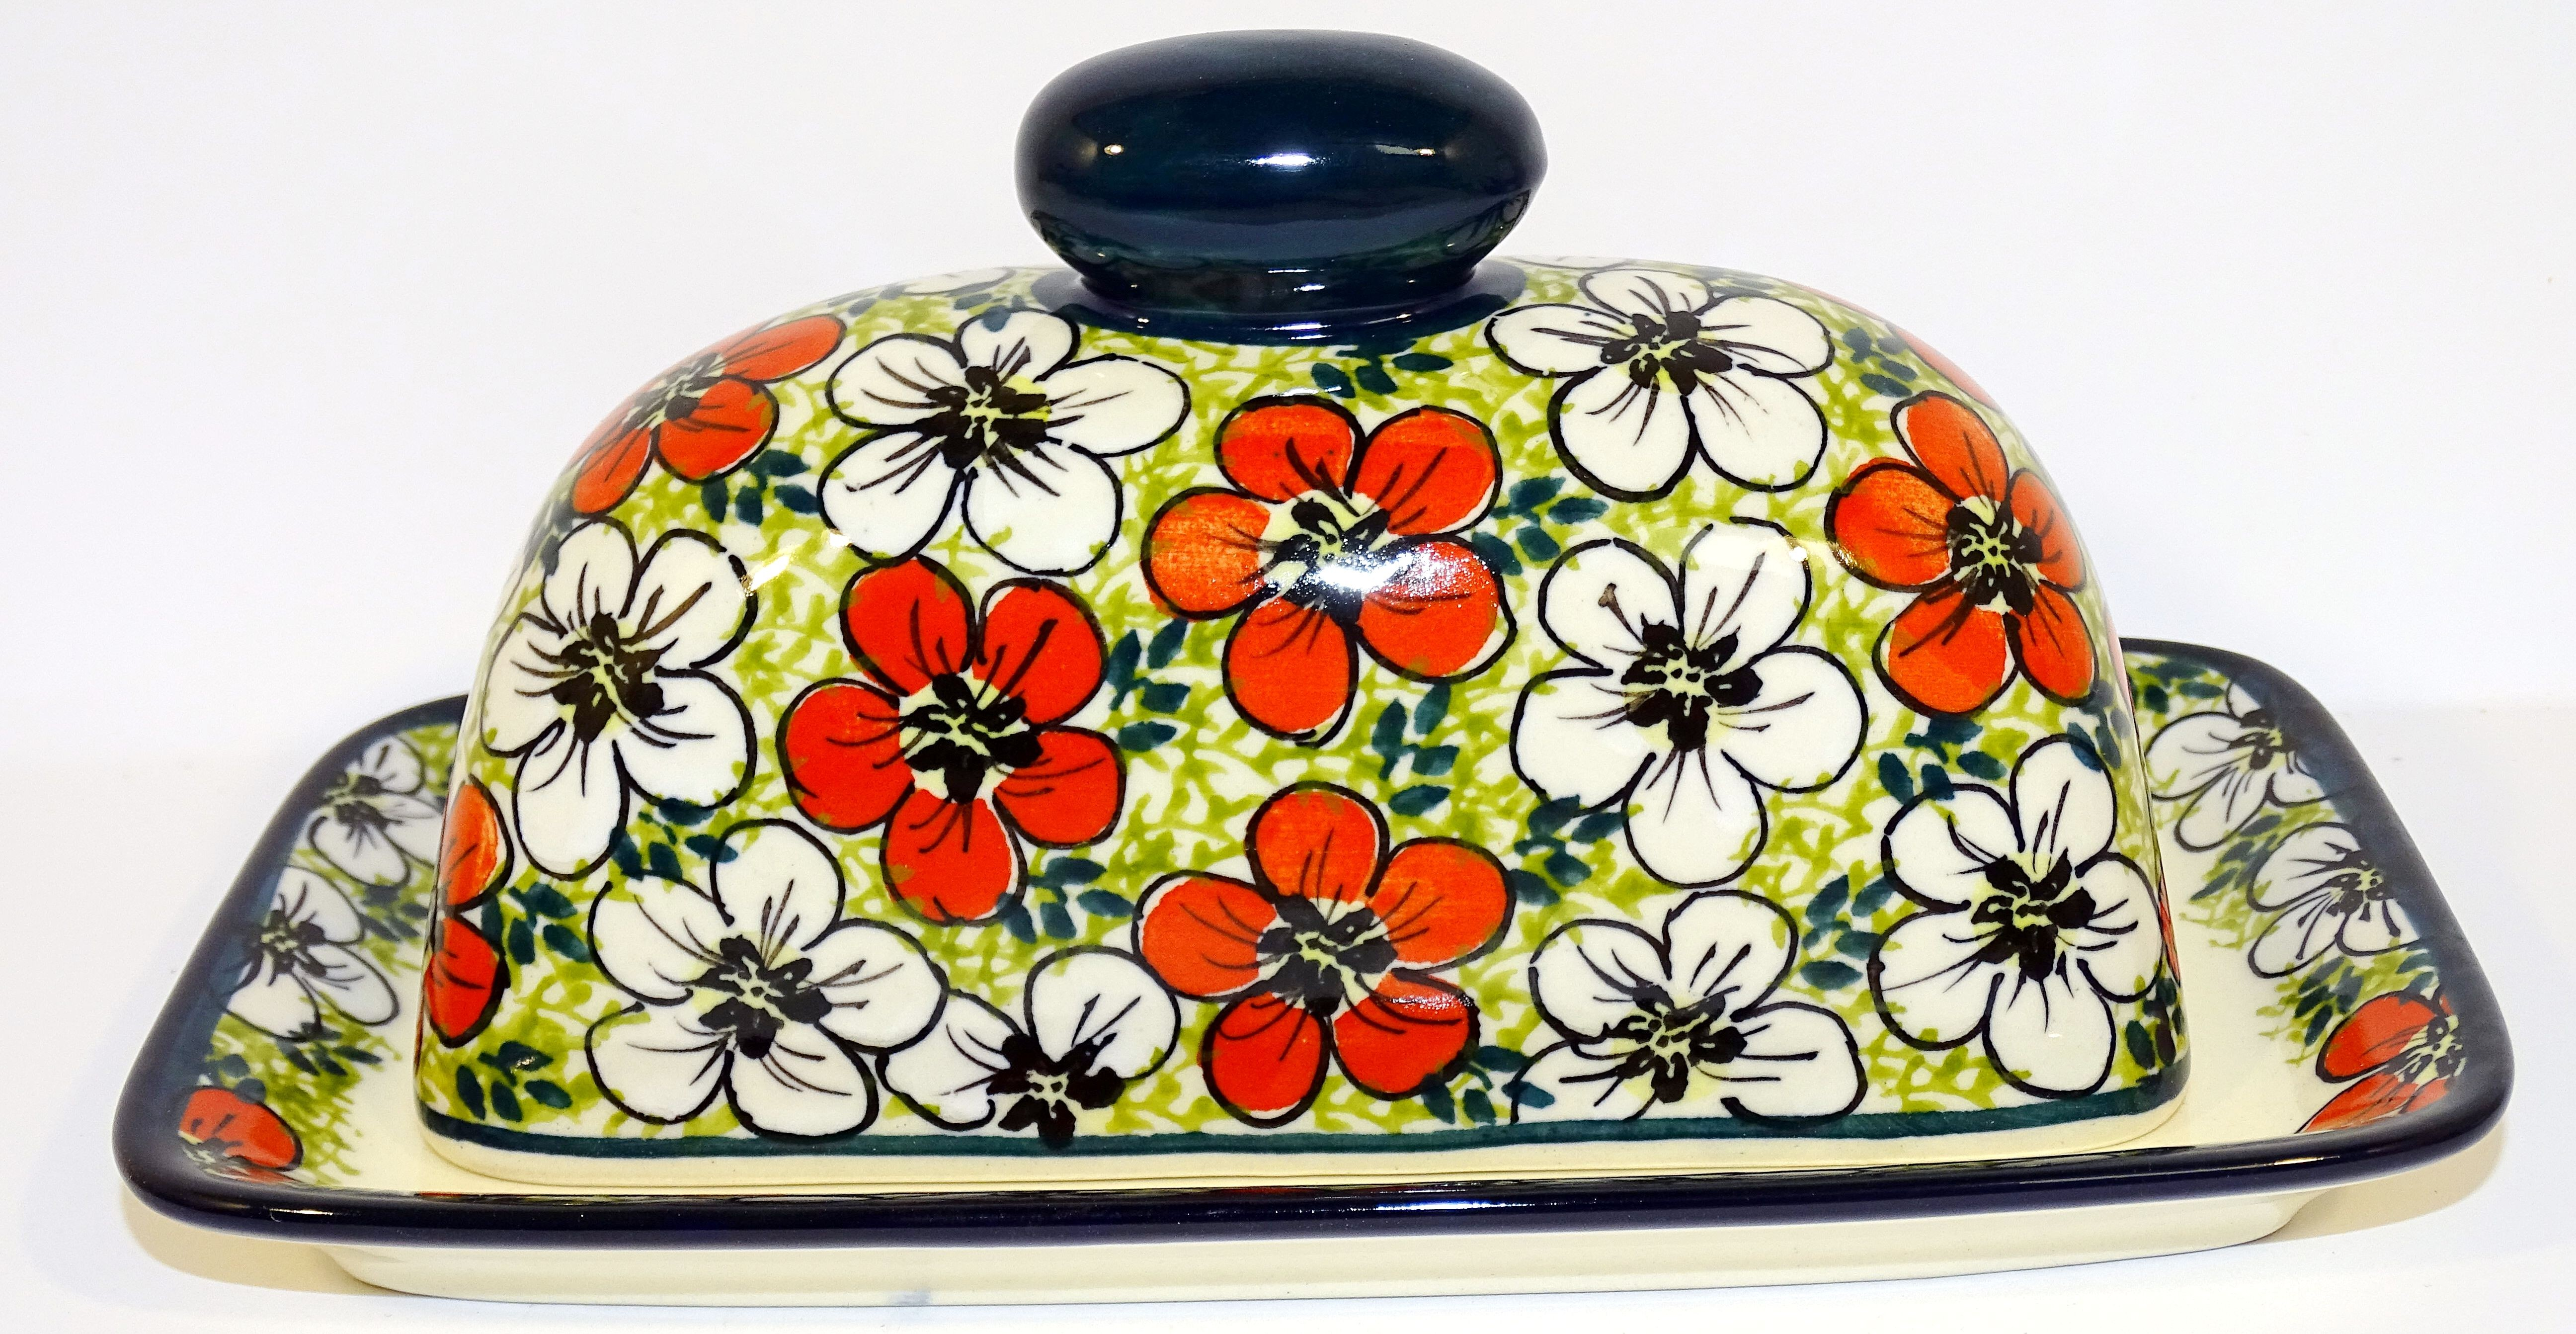 Pottery Avenue 2-Piece Covered Stoneware Butter Dish - 1377-331AR Red Bacon